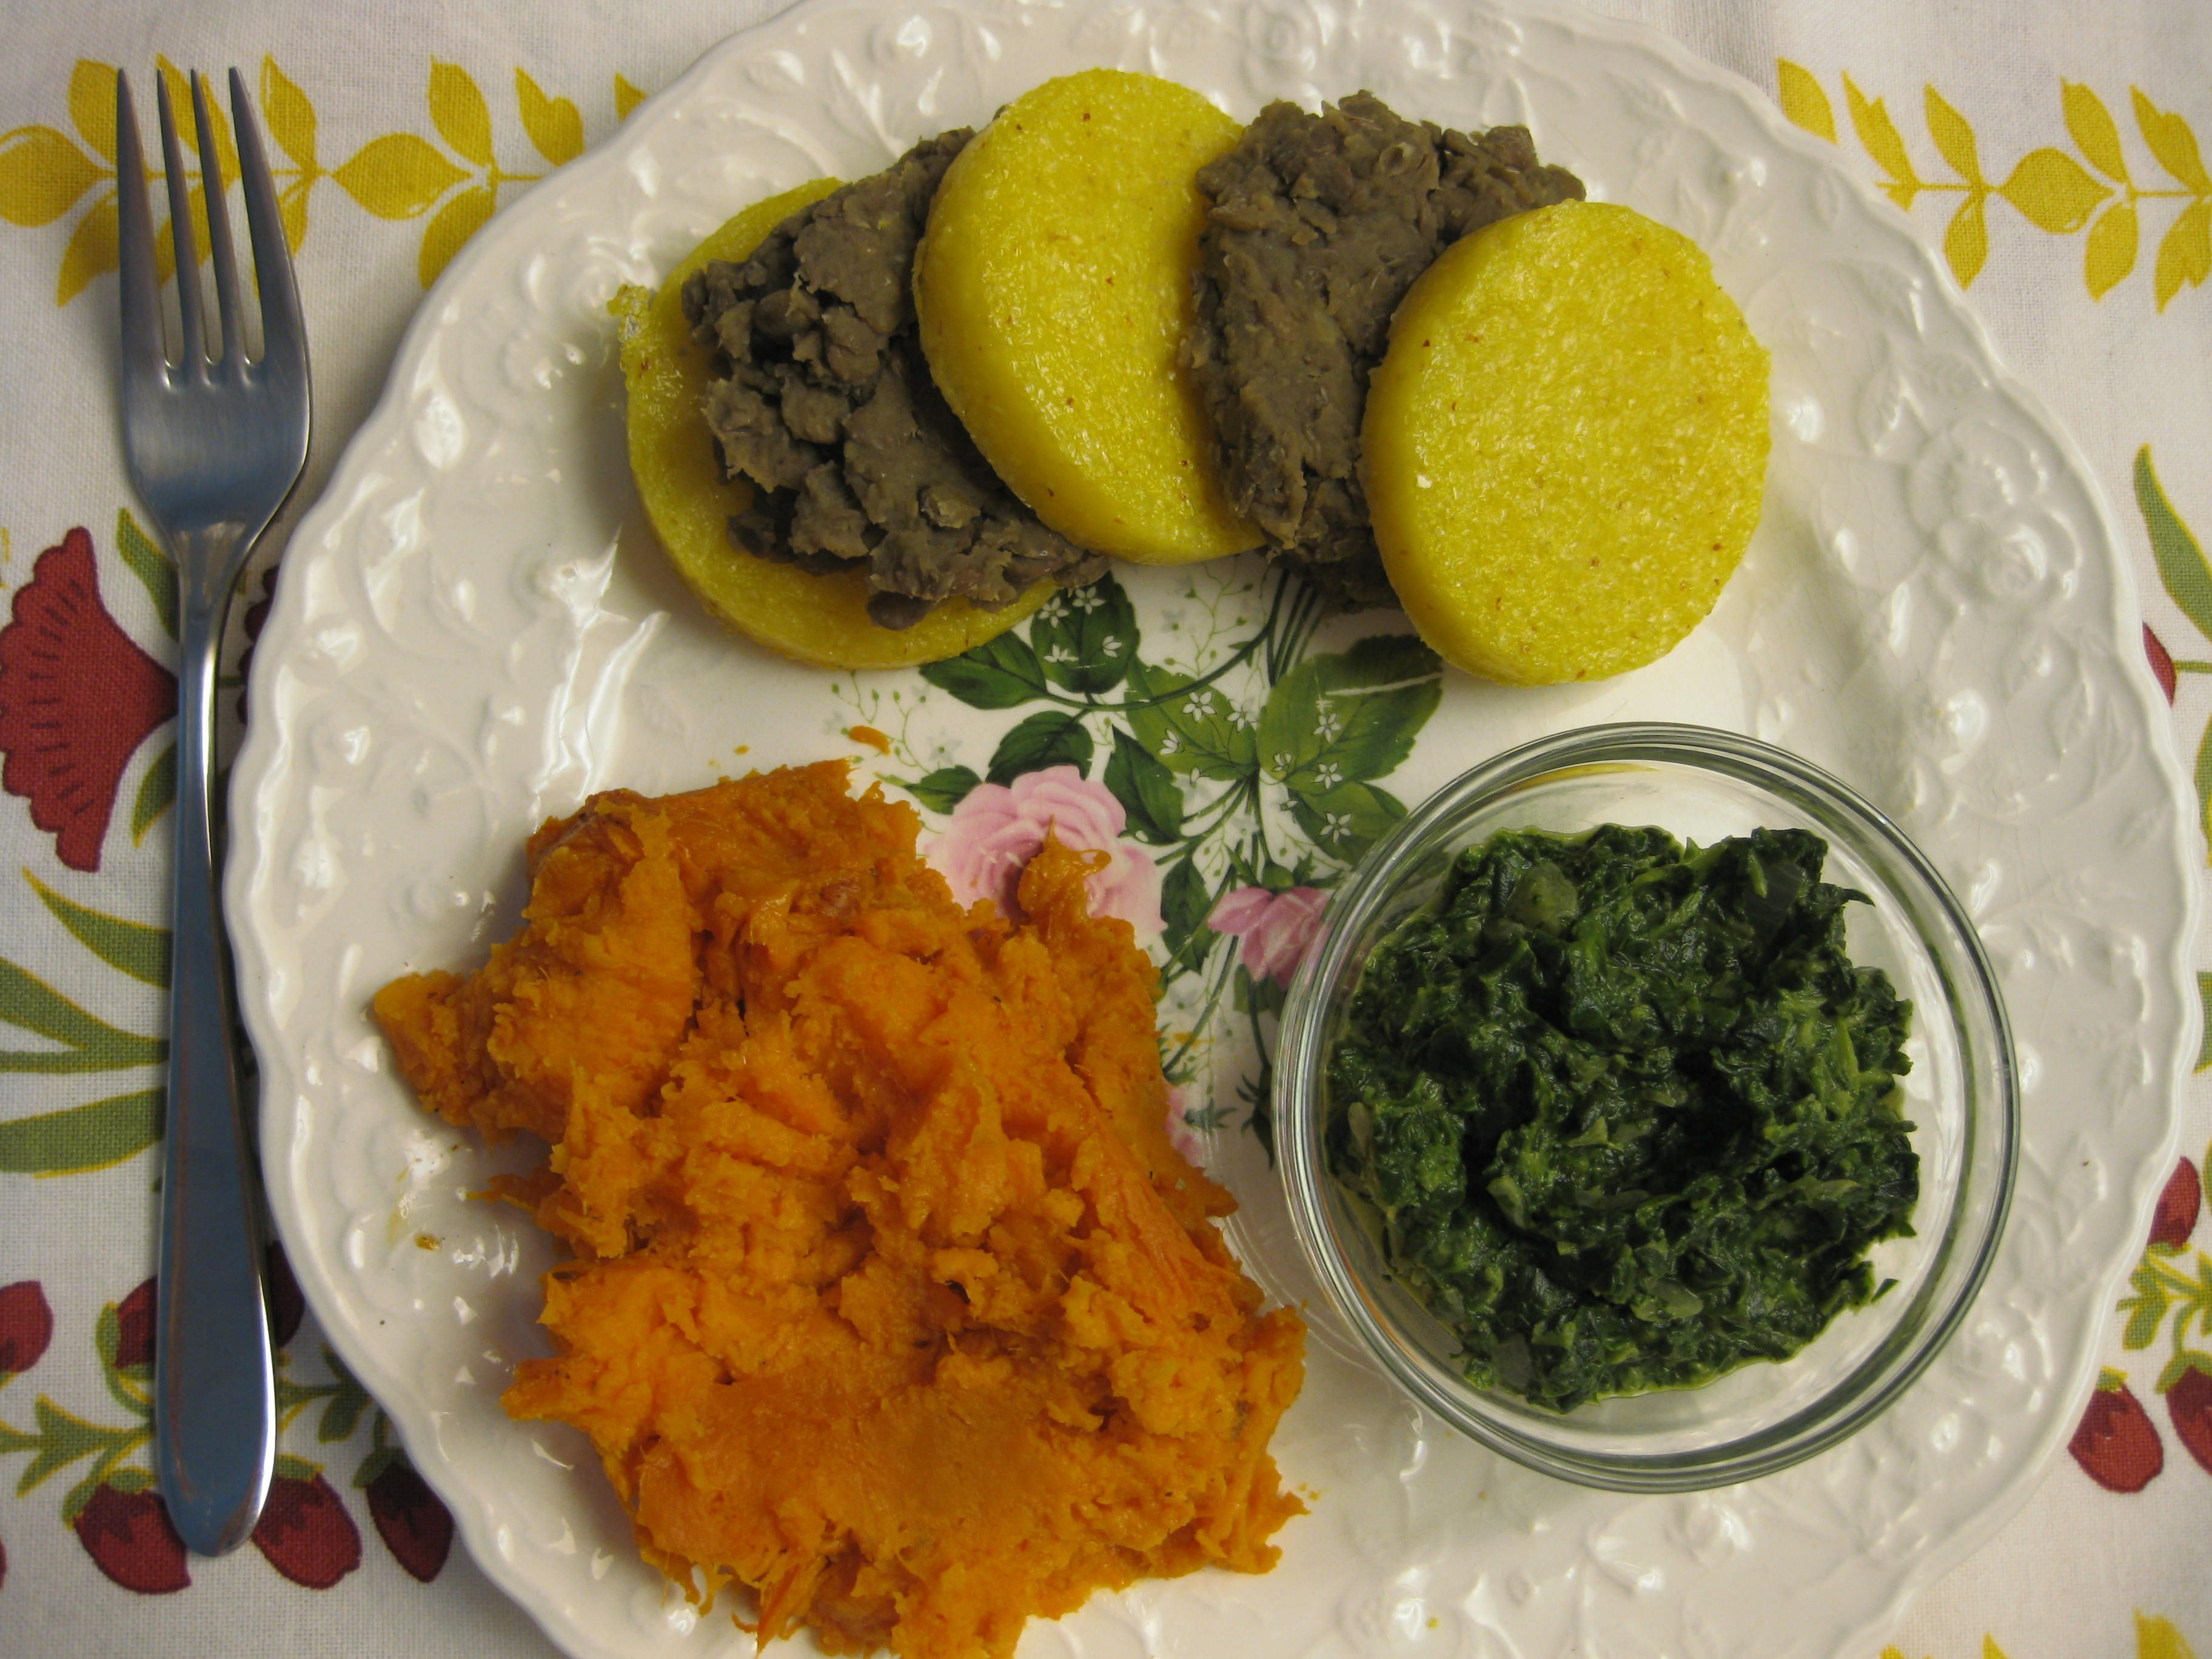 Blog with recipes suitable for puree diets for dysphagia